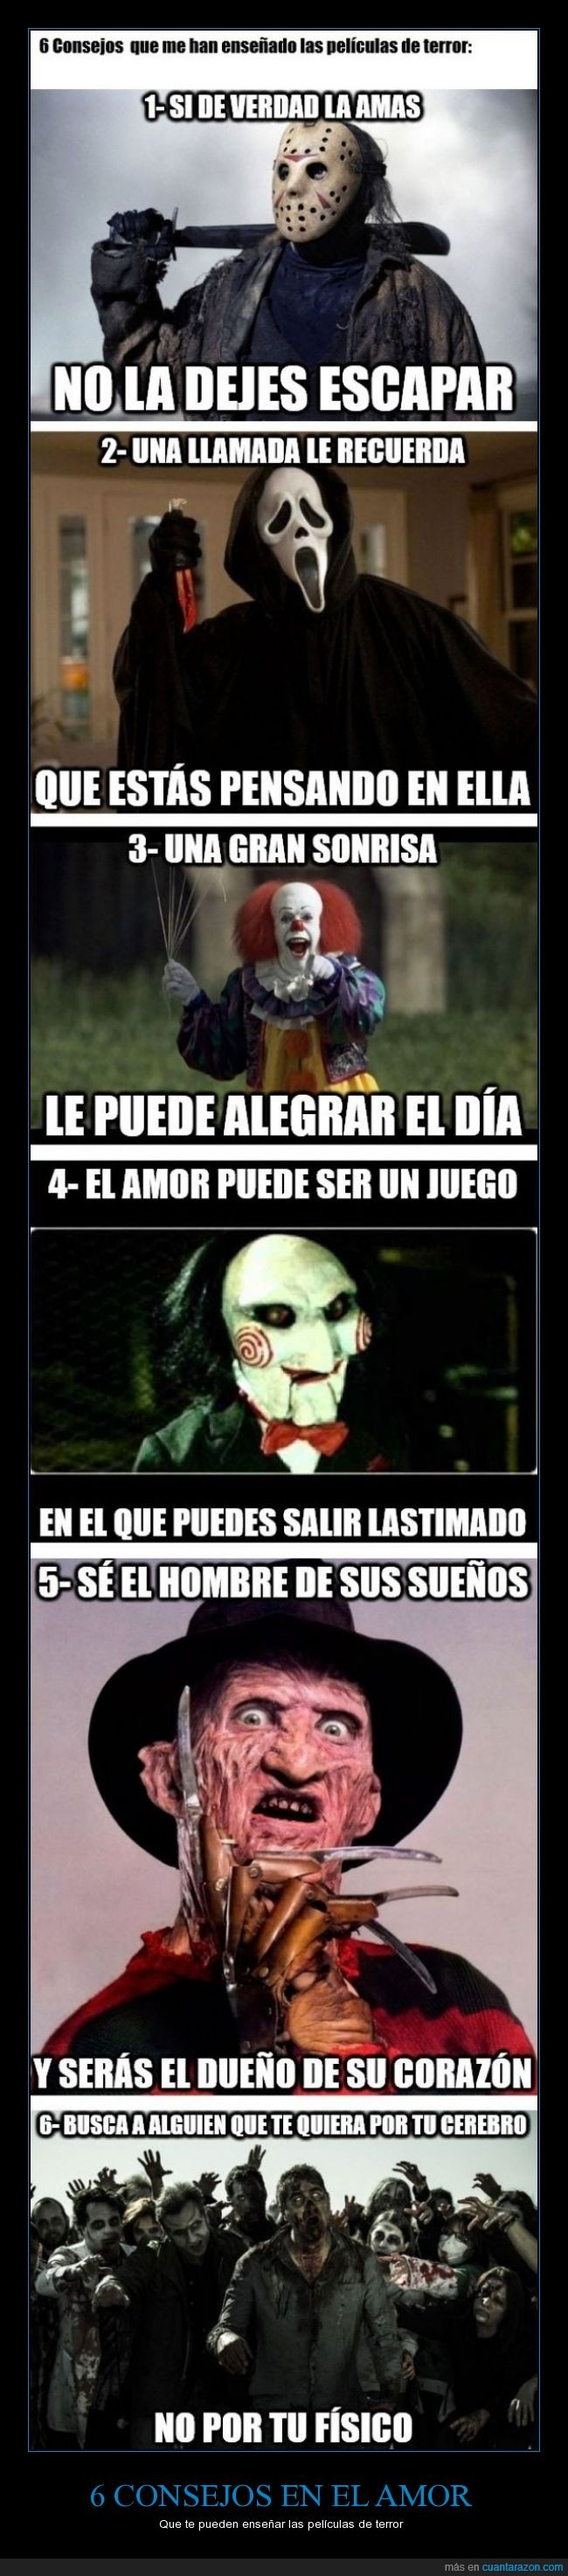 amor,cerebro,Freddy Krueger,It is eso,Jason,Películas,Saw,Scream,sueños,Terror,Zombies